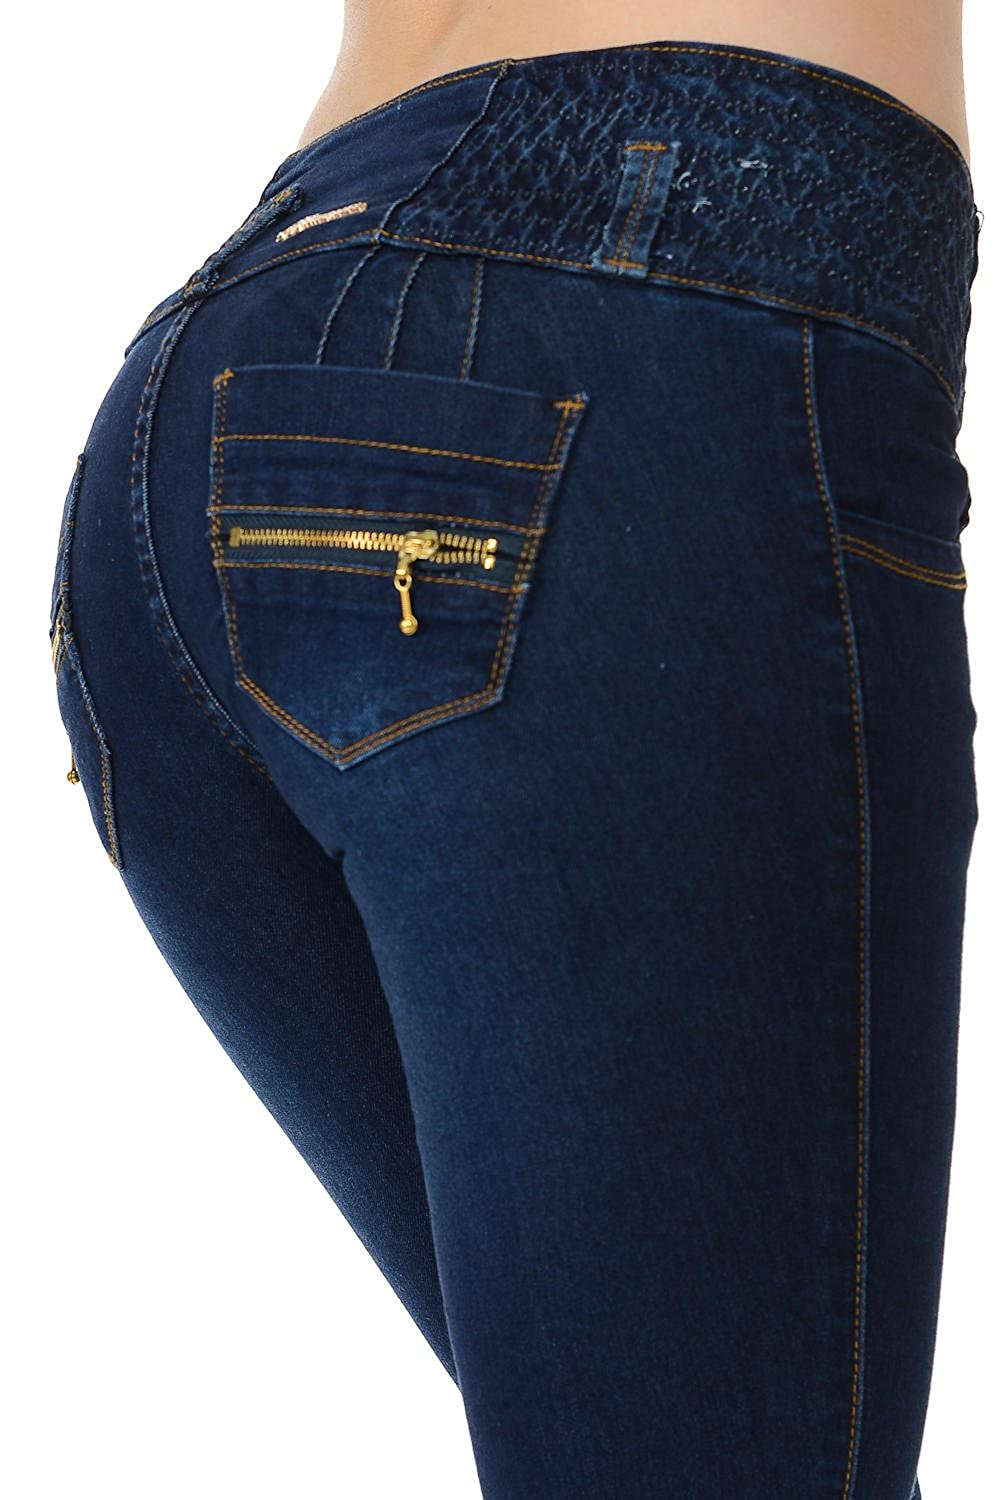 Levanta Cola Butt Lift Push Up Skinny /· Style A5183 M.Michel Womens Jeans Colombian Design